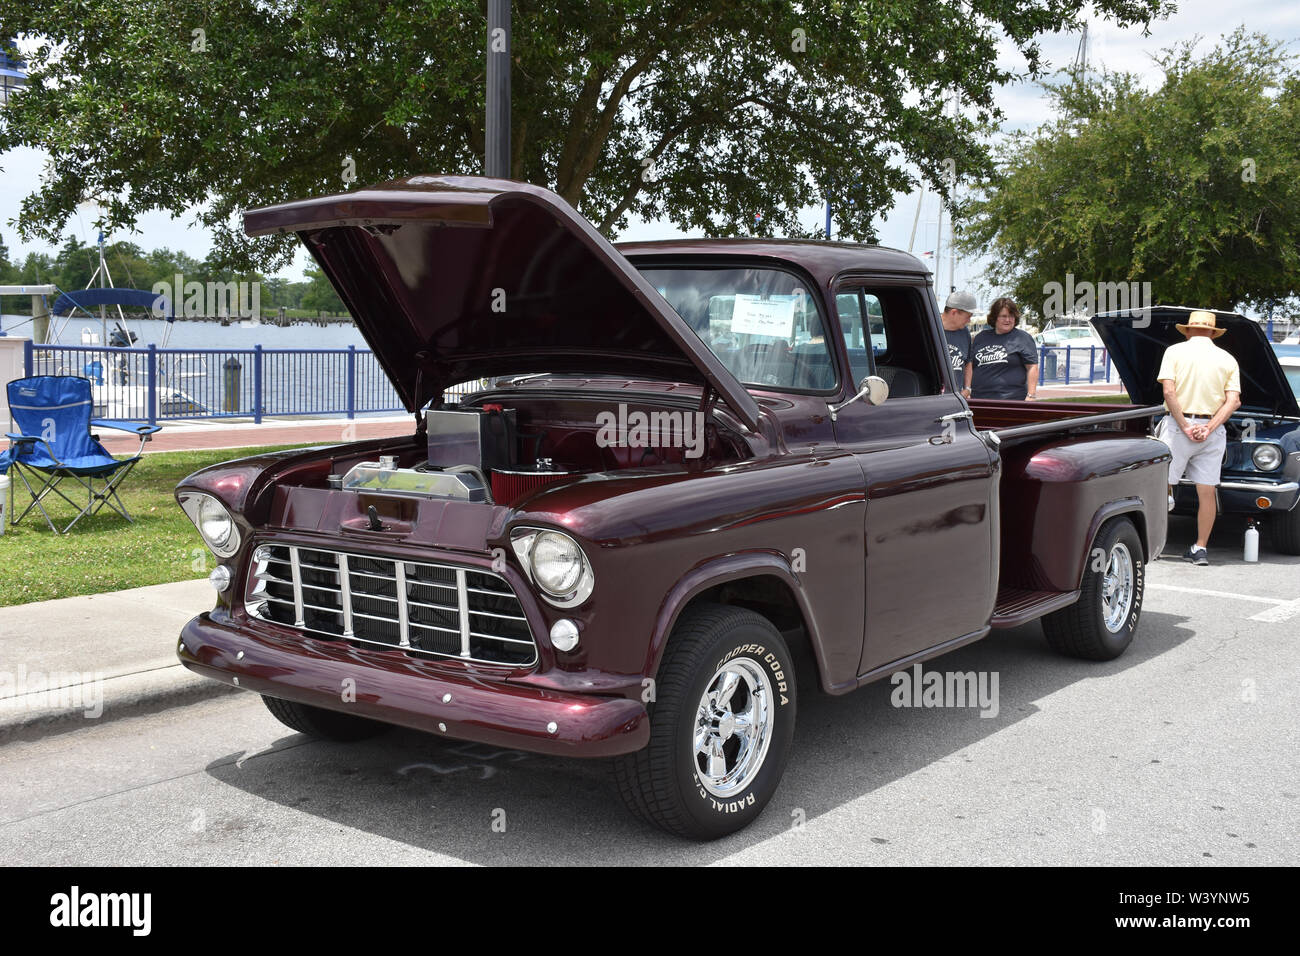 1956 56 CHEVY TRUCK Parking Sign